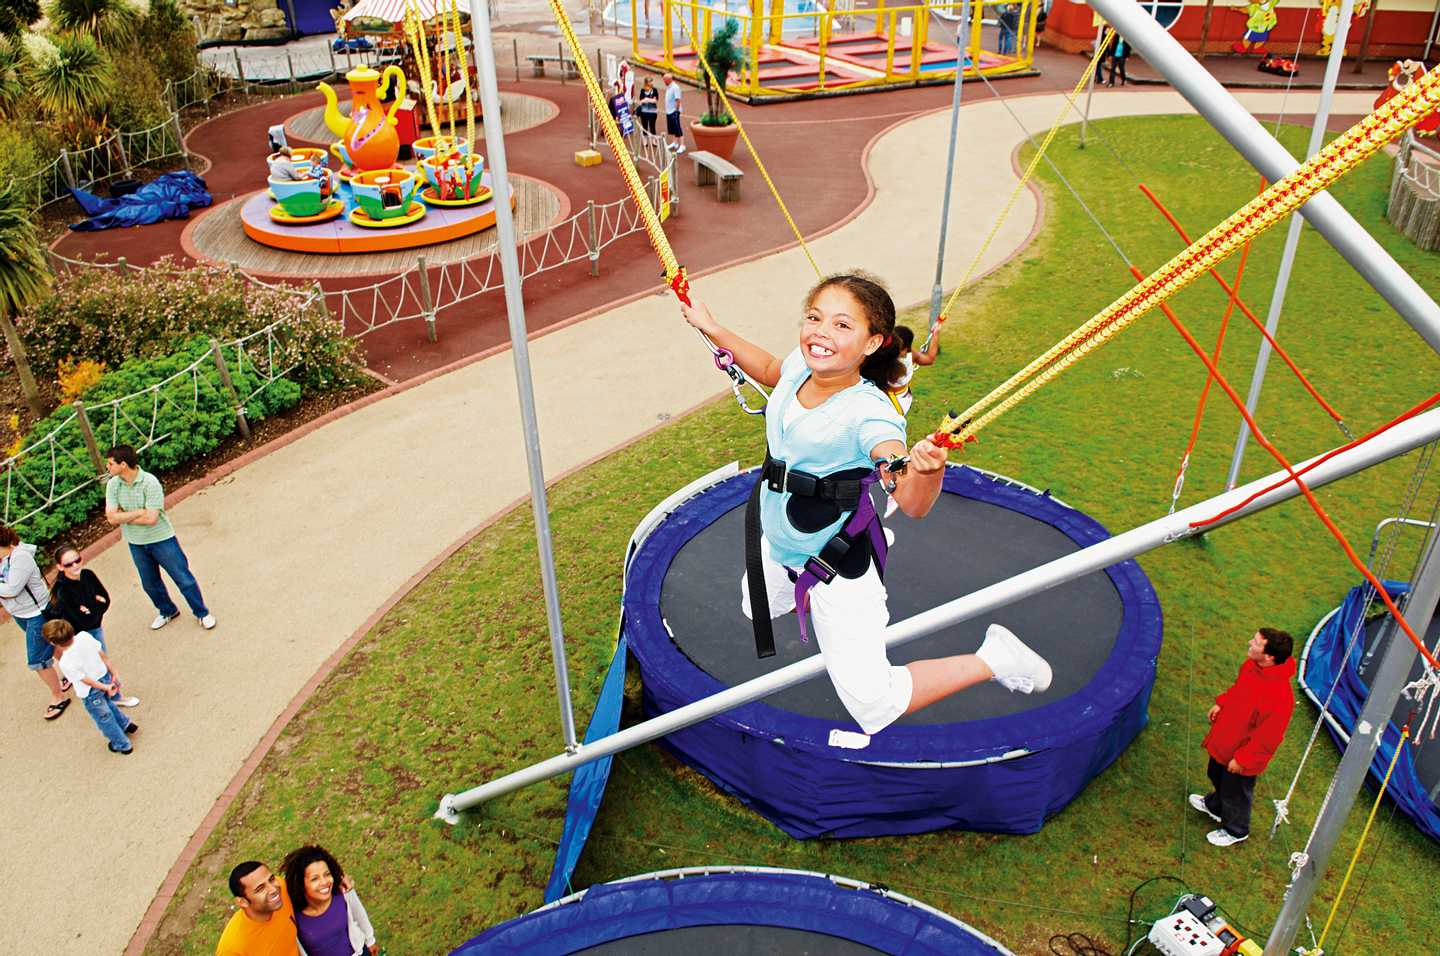 A guest bungee trampolining at Thorpe Park